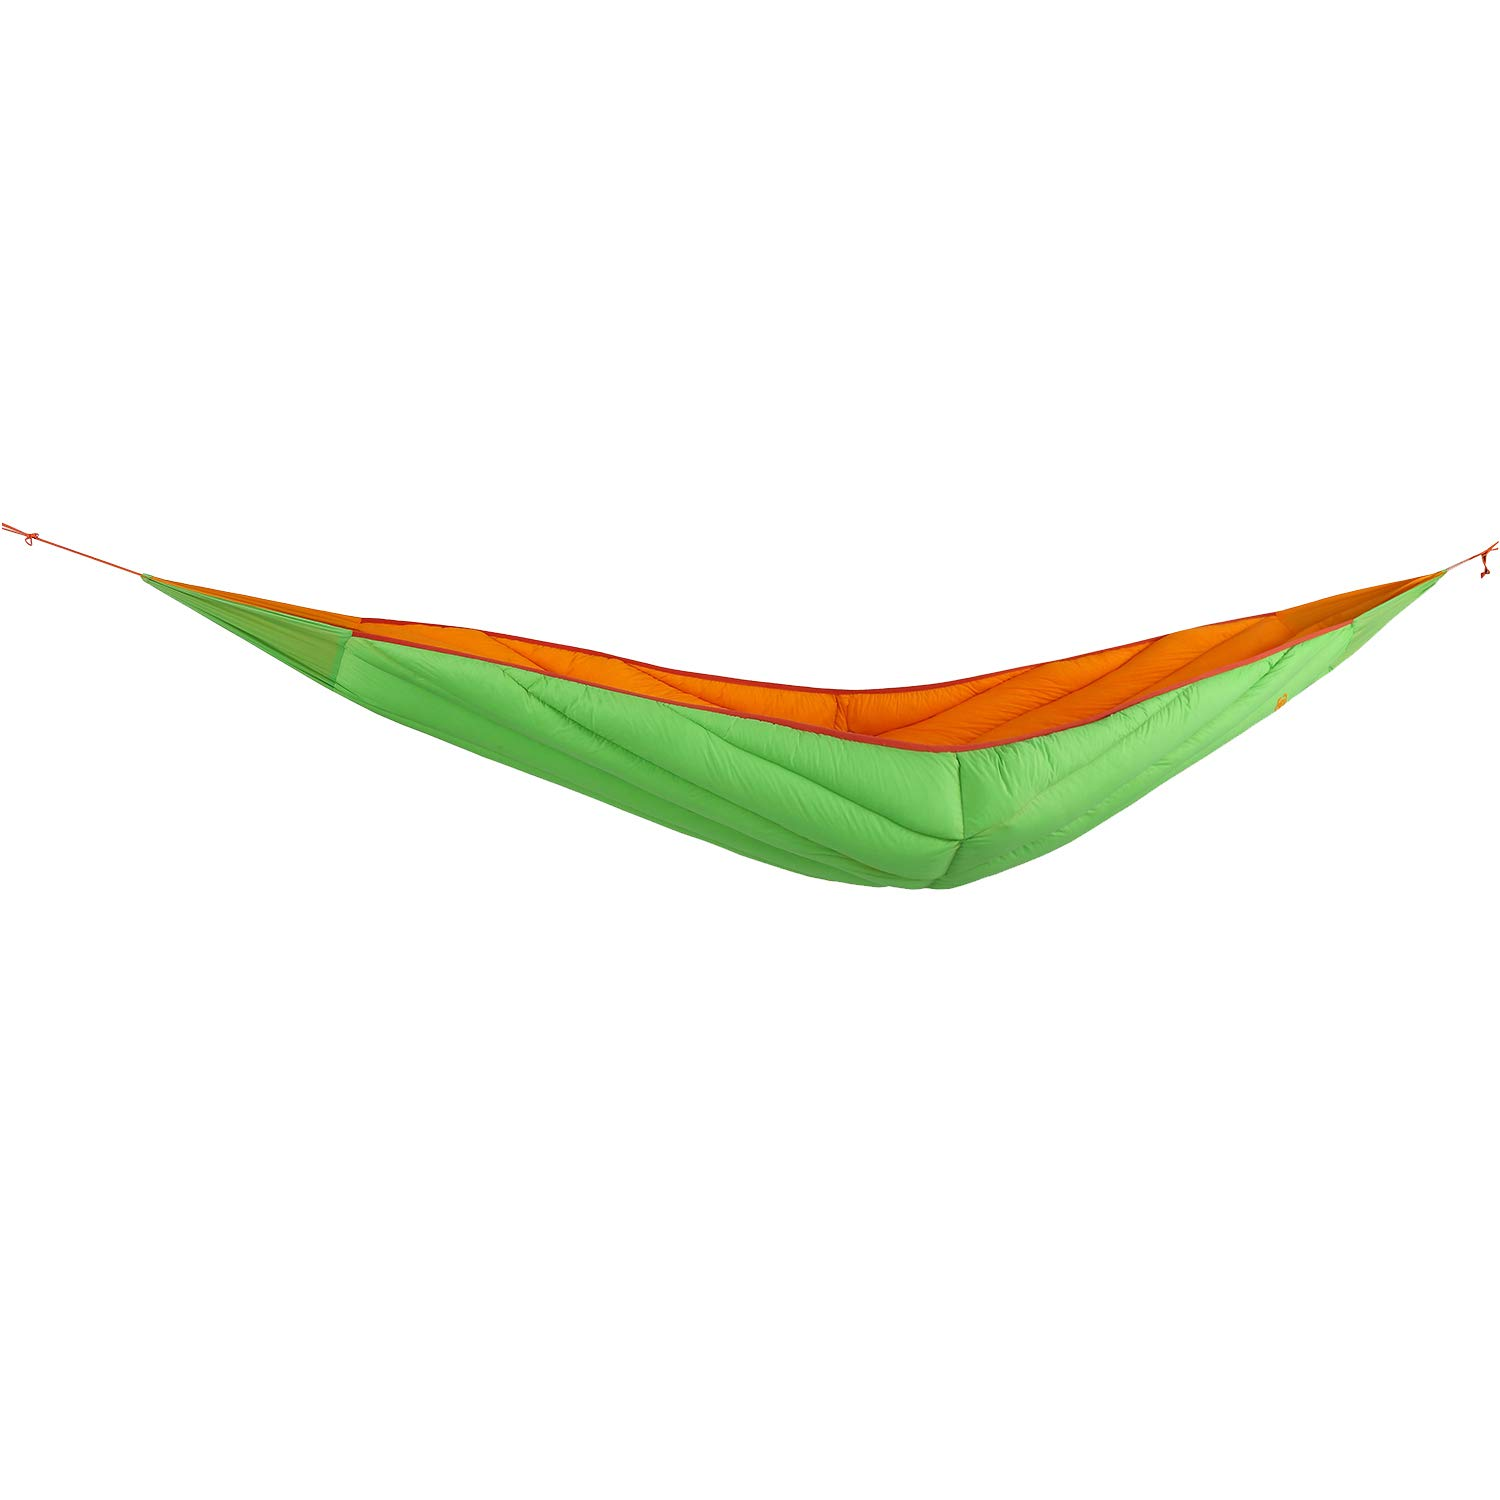 Camping Down Underquilt OneTigris Winter Foliage Hammock Underquilt Hammock Underquilt for Extreme Cold